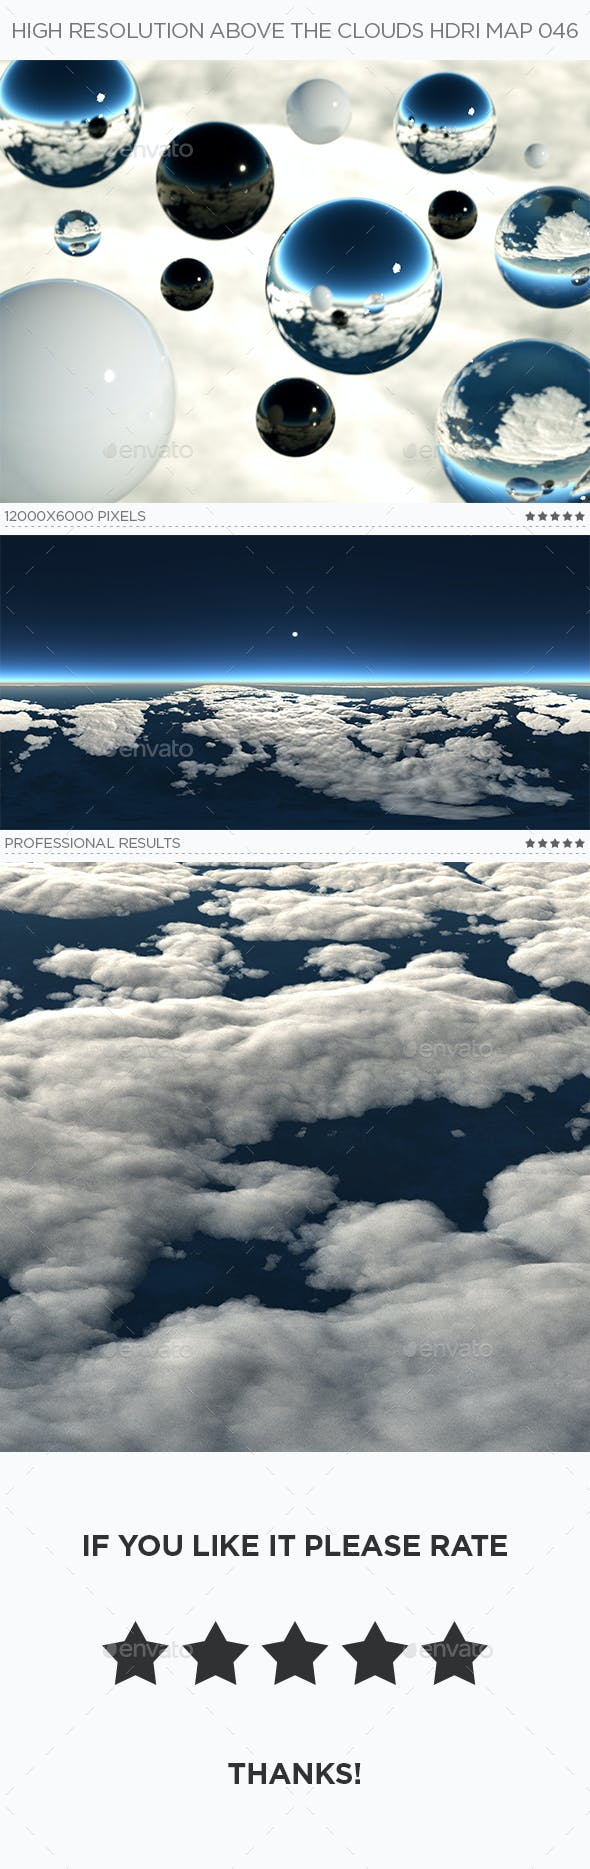 High Resolution Above The Clouds HDRi Map 046 - 3DOcean Item for Sale